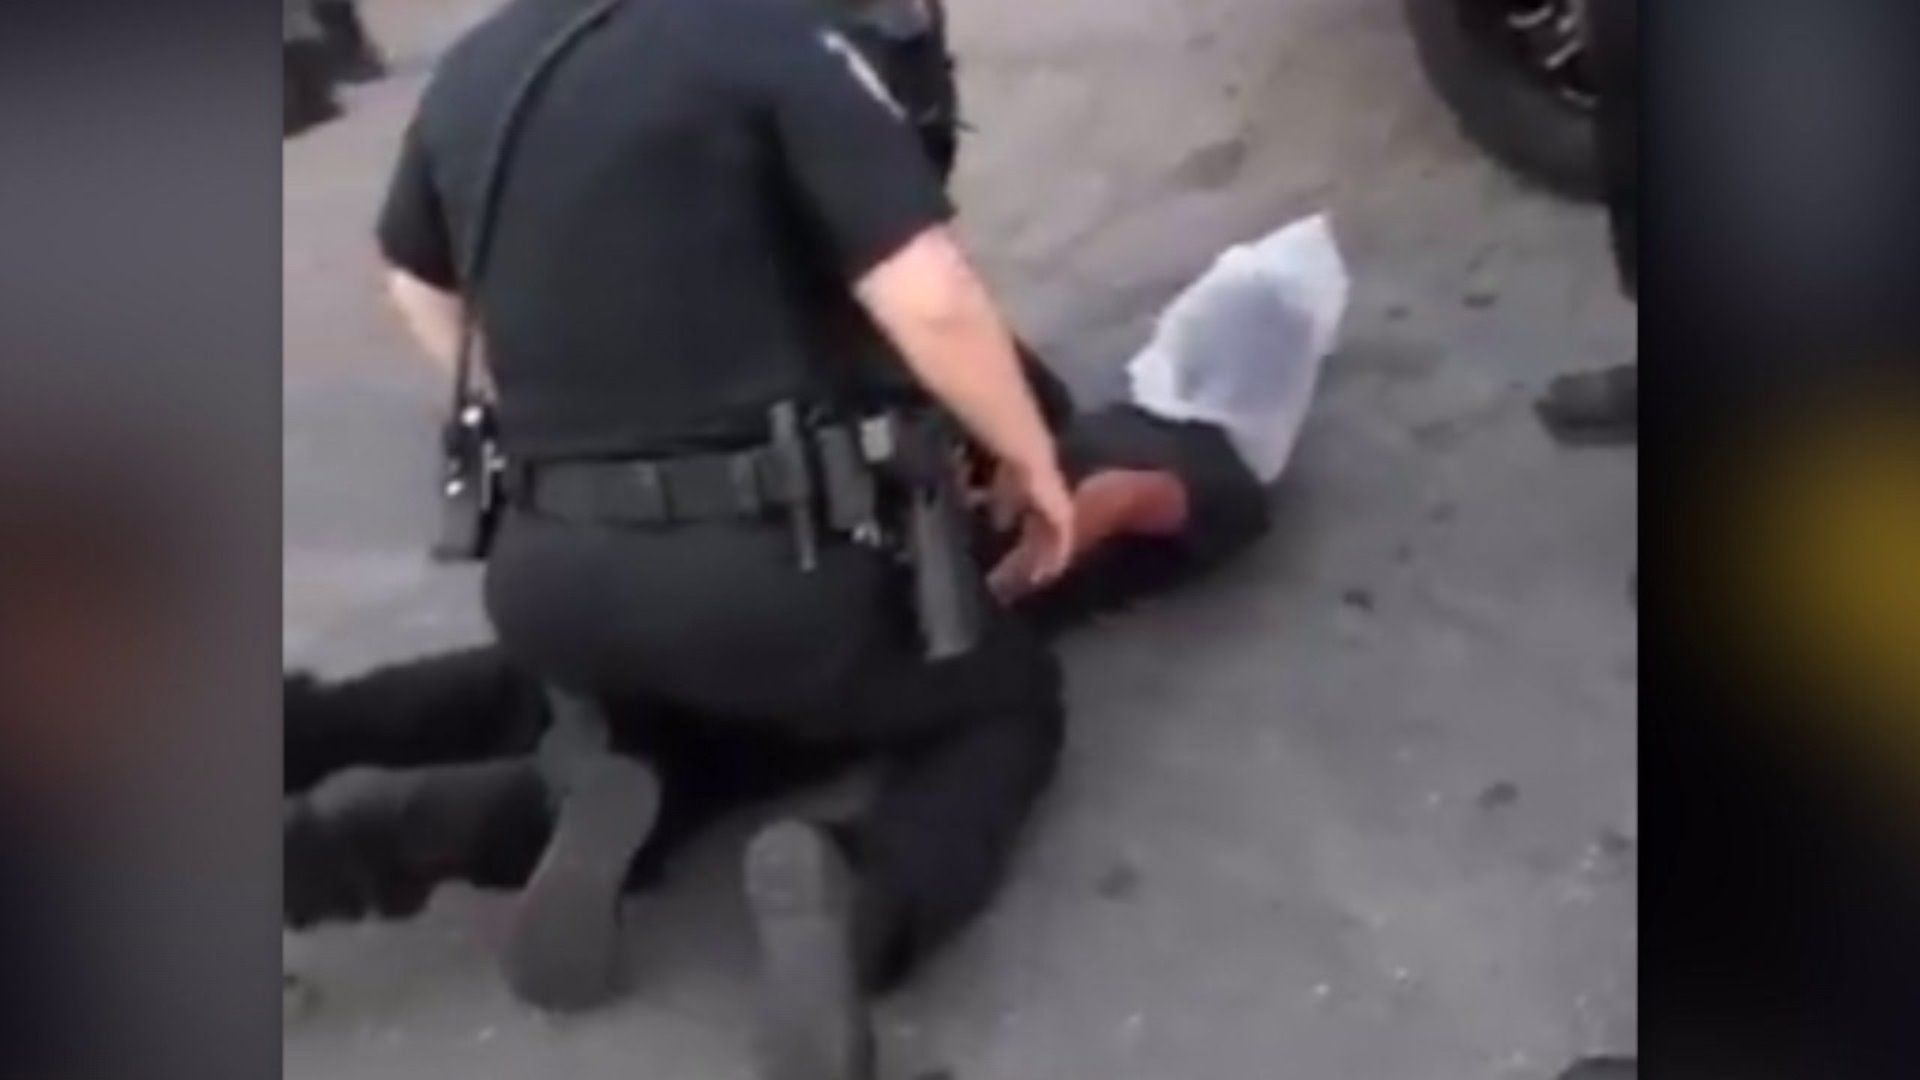 Sacramento Police Face Criticism For Arresting, Putting Sack Over Head Of 12-Year-Old Black Boy